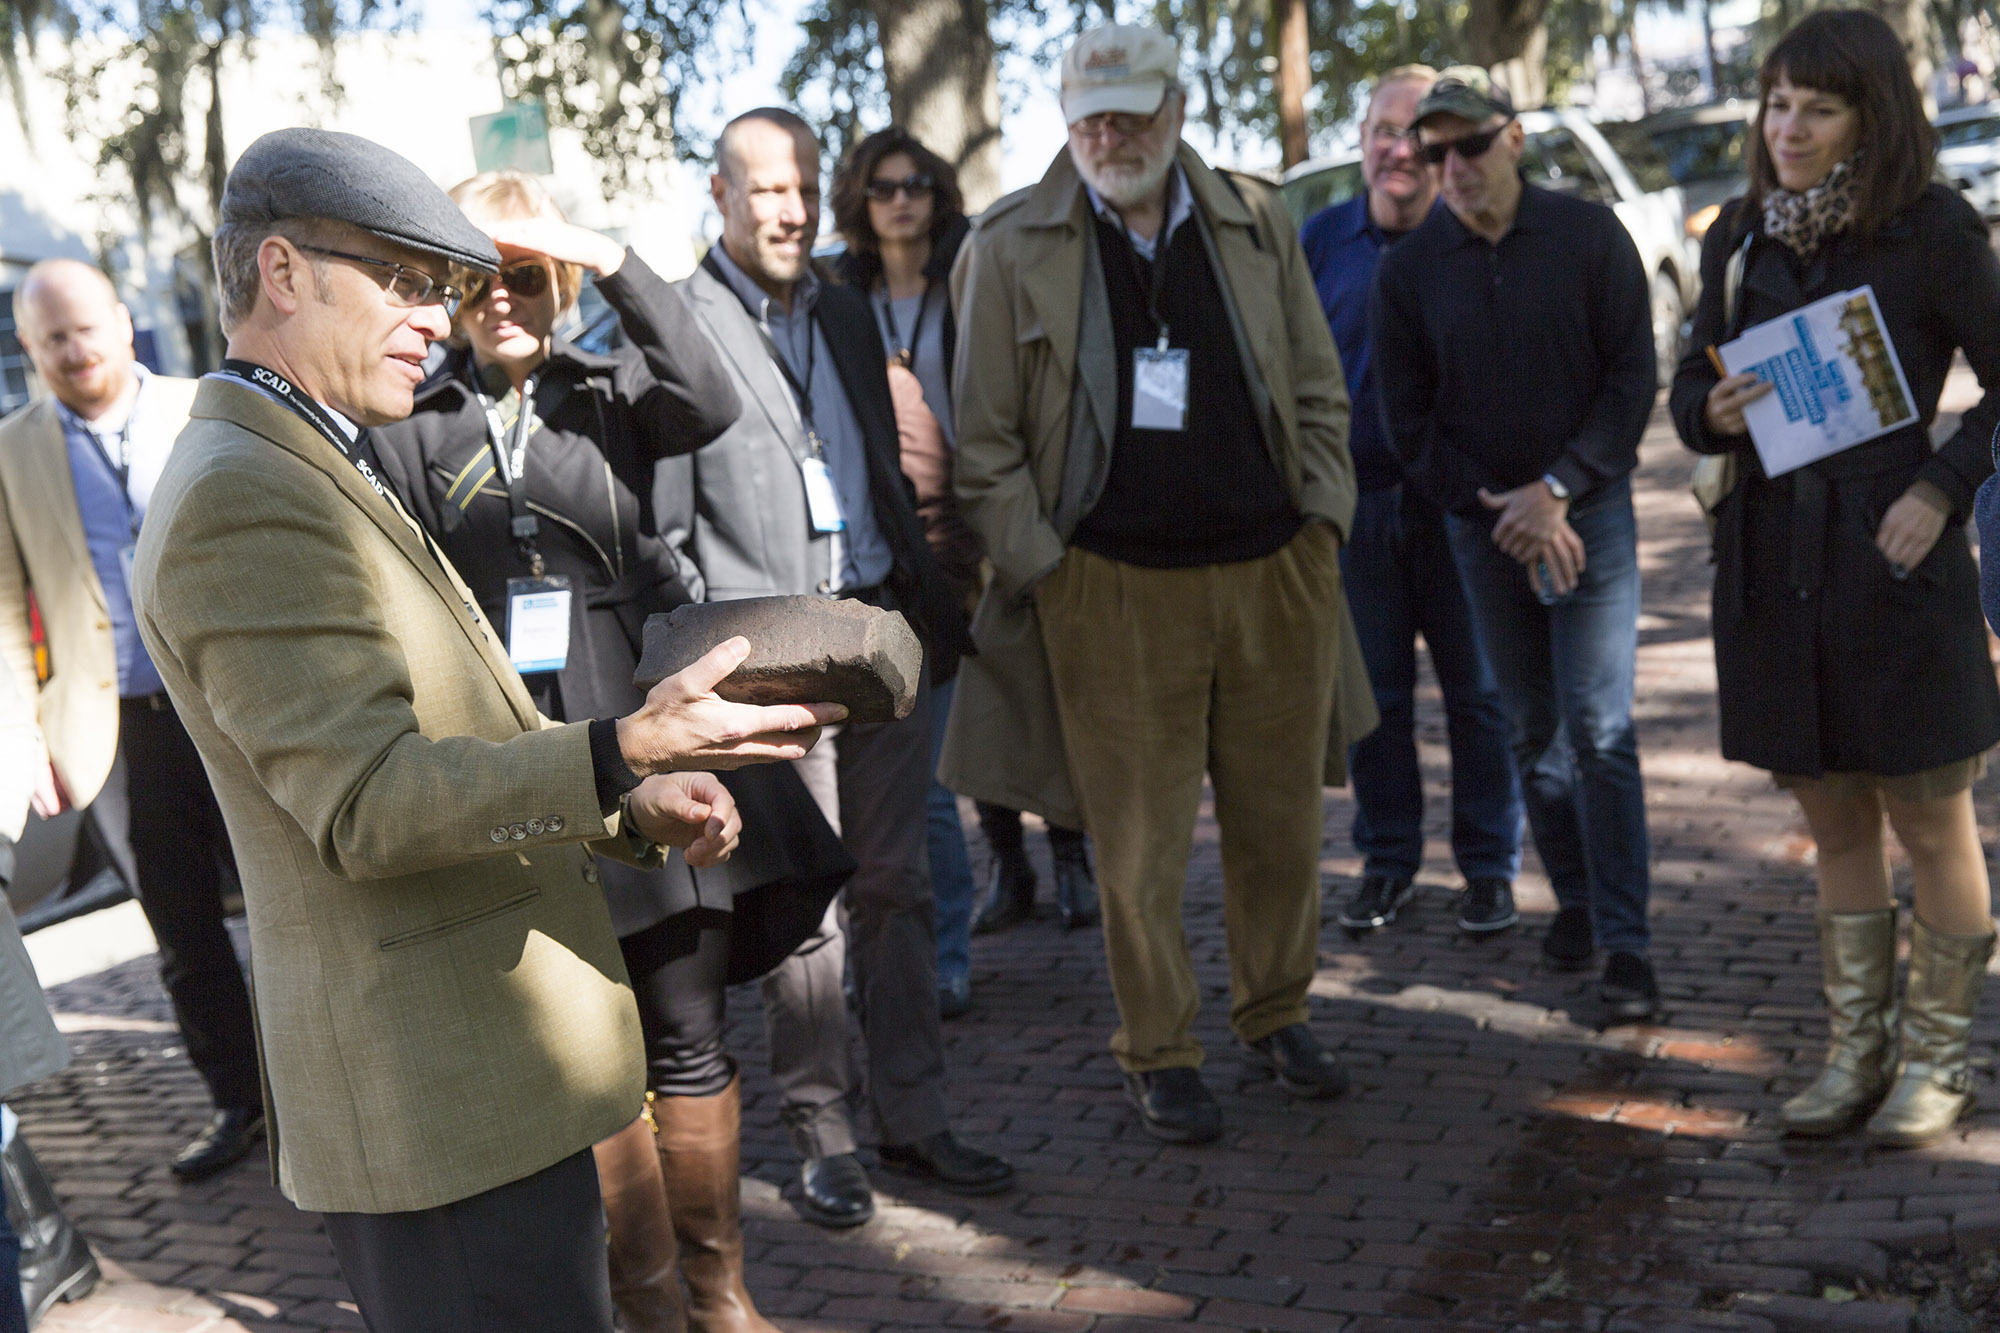 Site author Robin B. Williams leading a walking tour during the 9th Savannah Symposium: The Architecture of Trade, pointing out that the vitrified bricks used to pave Rossiter Street near the waterfront came from Birmingham, Alabama. Tree roots had pushed up some bricks, allowing this one to be picked up. February 2015.